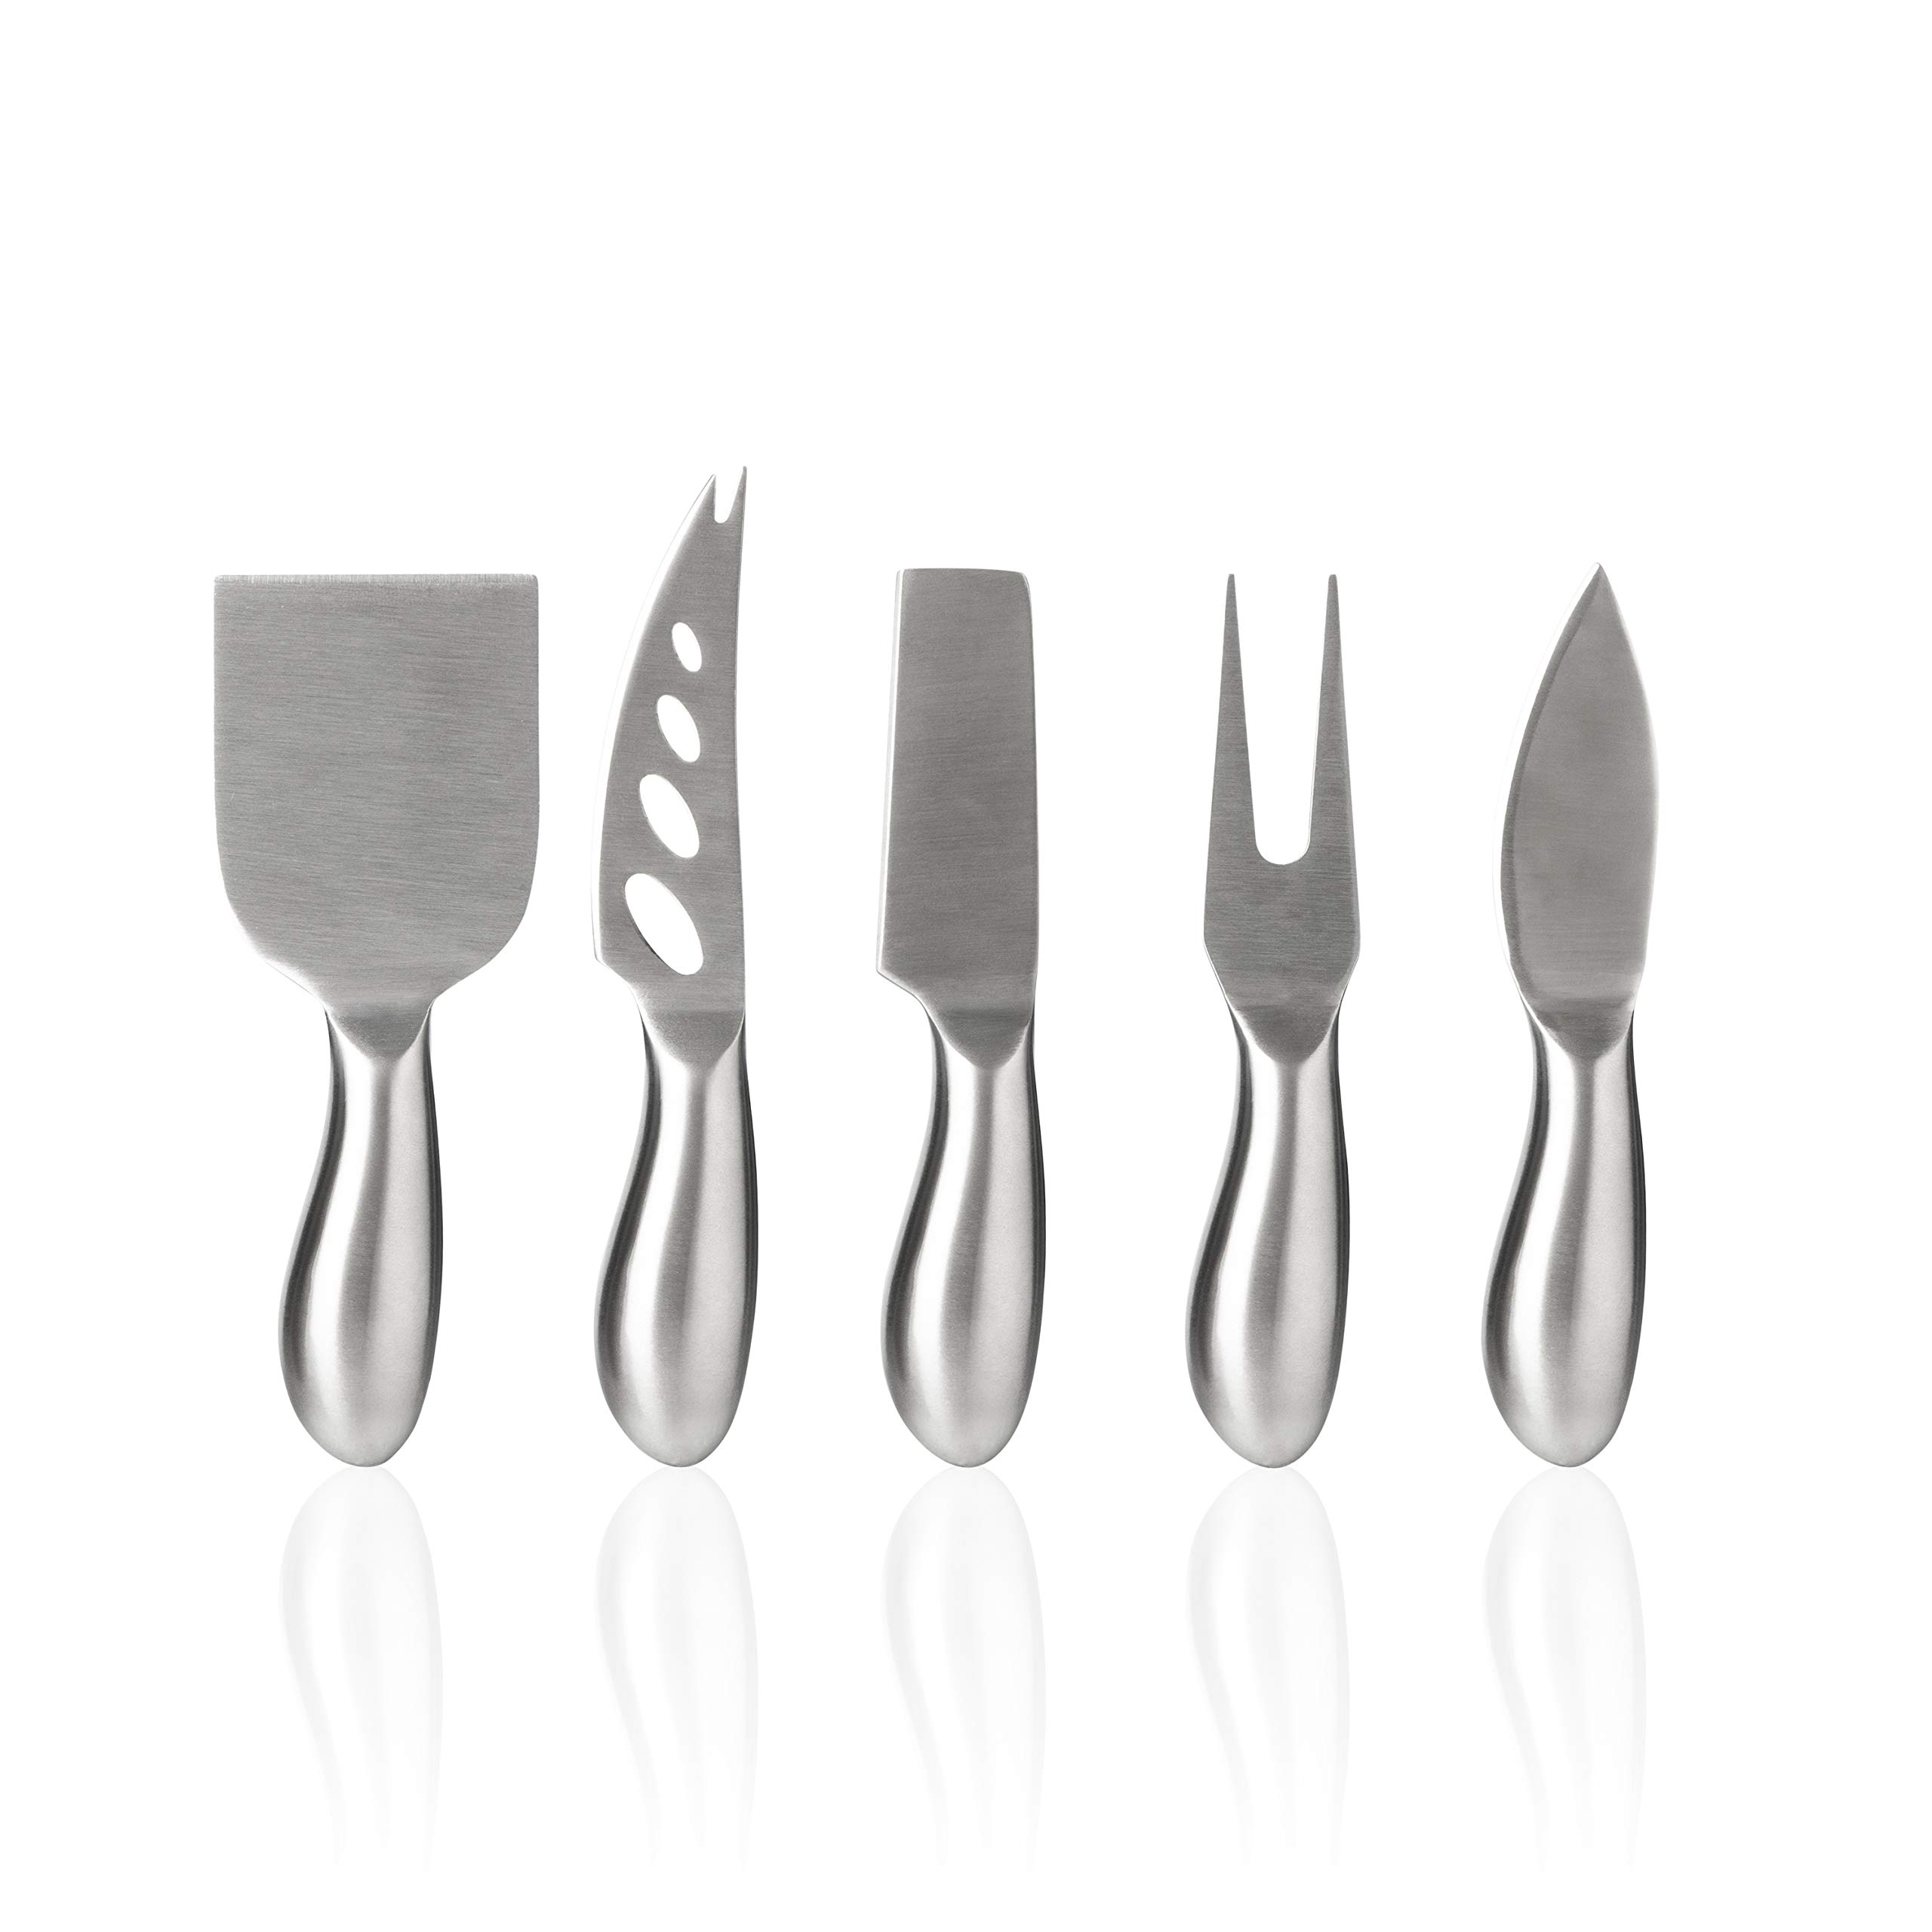 Royal Casa Cheese Knives and Slate Markers Set. Complete Cheese Board Set with 5 Stainless Steel Knives and 6 Slate Cheese Markers. Includes 2 soapstone chalks & cloth bag. Perfect Gift Idea by Royal Casa (Image #3)